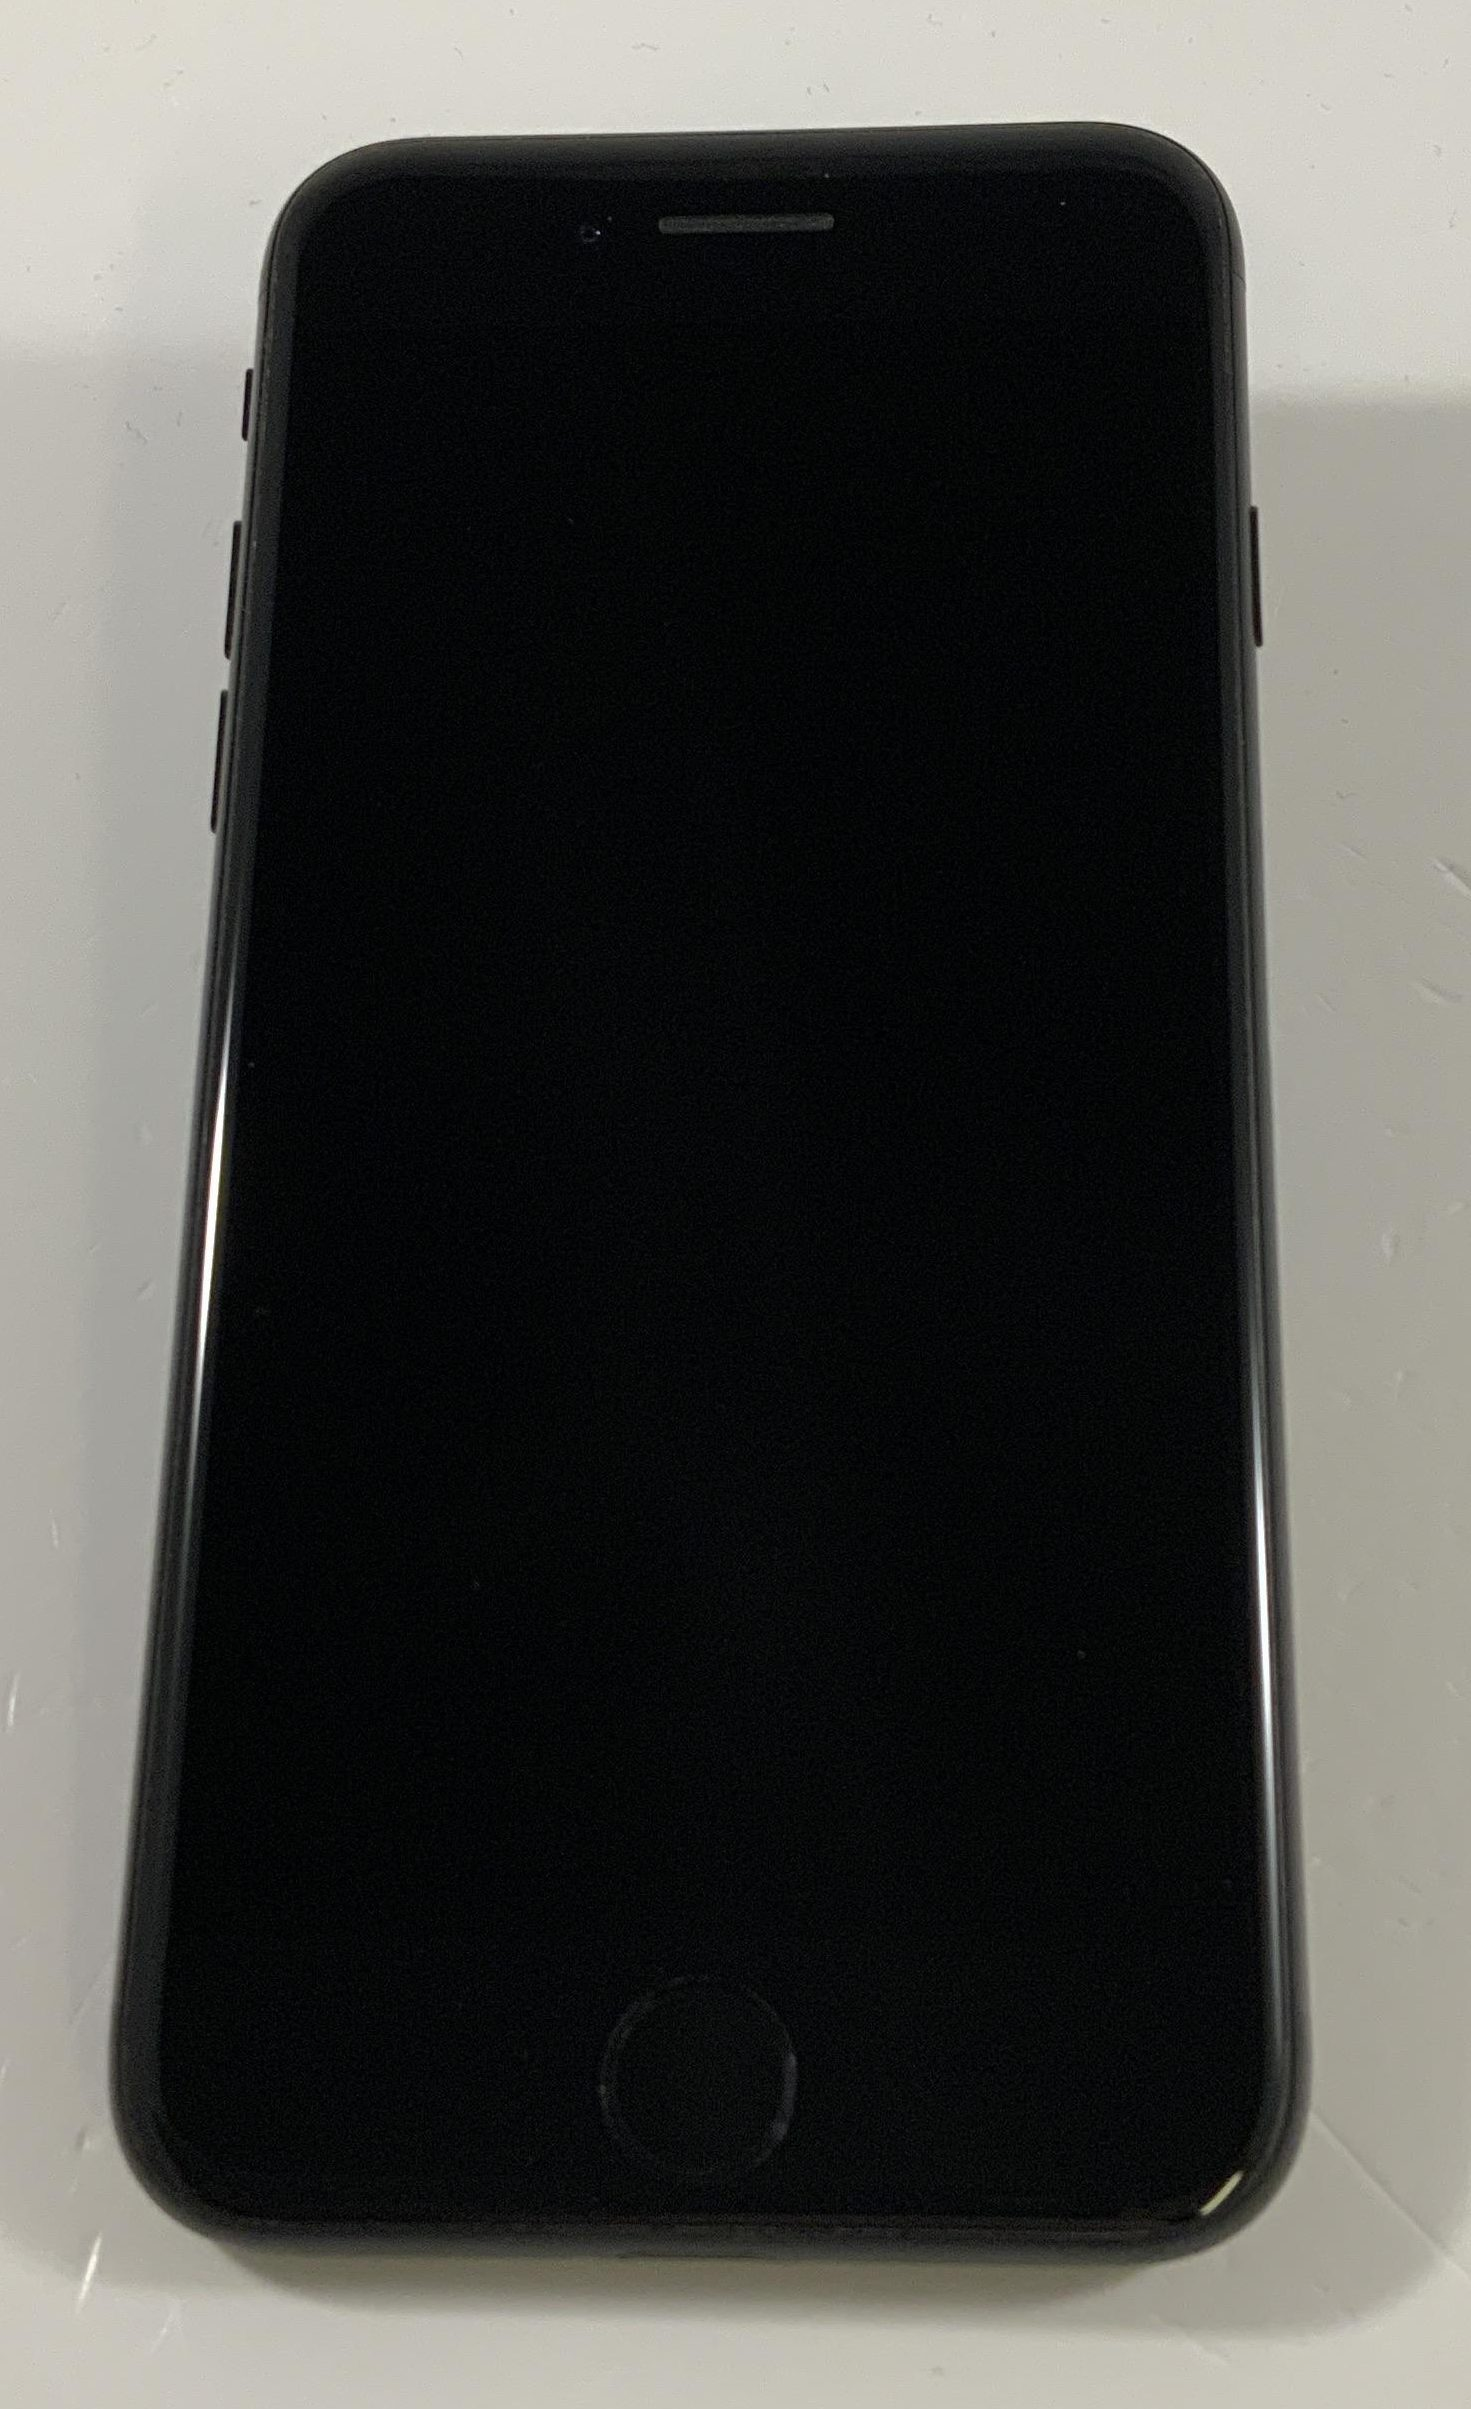 iPhone 7 32GB, 32GB, Black, image 1